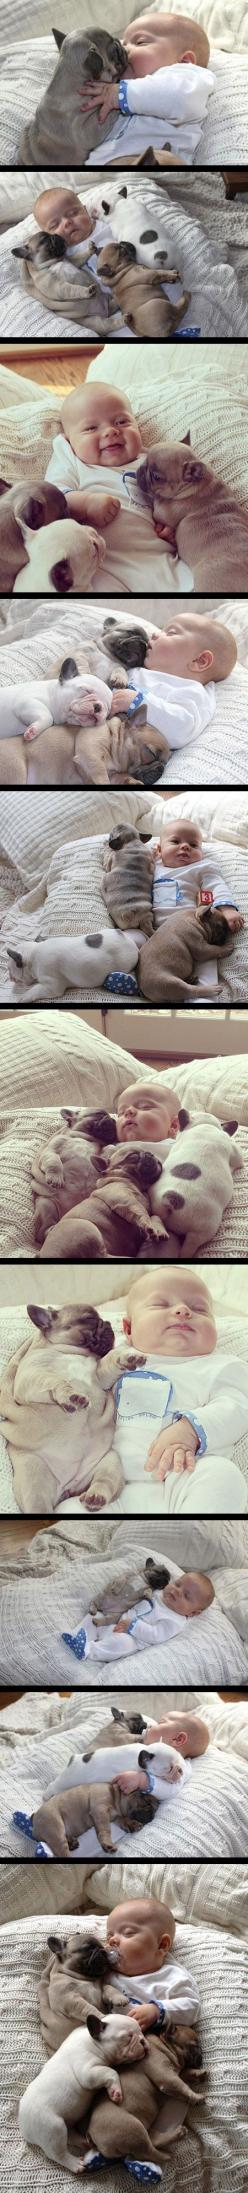 Cutest .Click on the this link to have more fun: https://www.youtube.com/channel/UC9lNJWELIk-DSdI9bqamtDw: Cuteness Overload, French Bulldogs, My Heart, Puppy, Baby, Animal